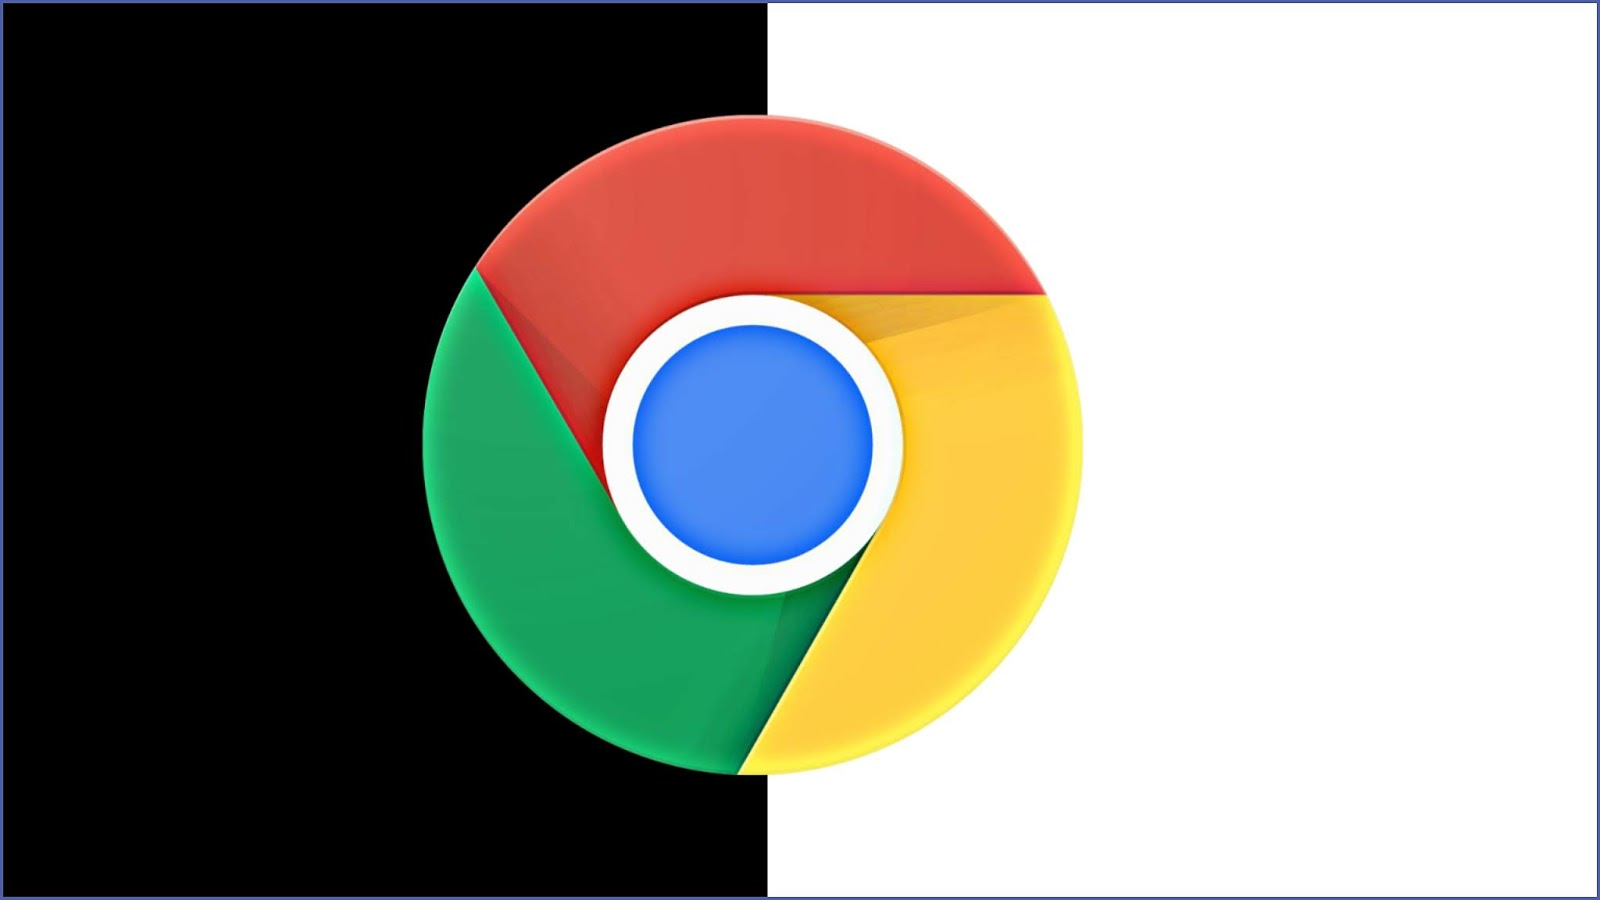 Android chrome mein dark mode kaise enable kare?